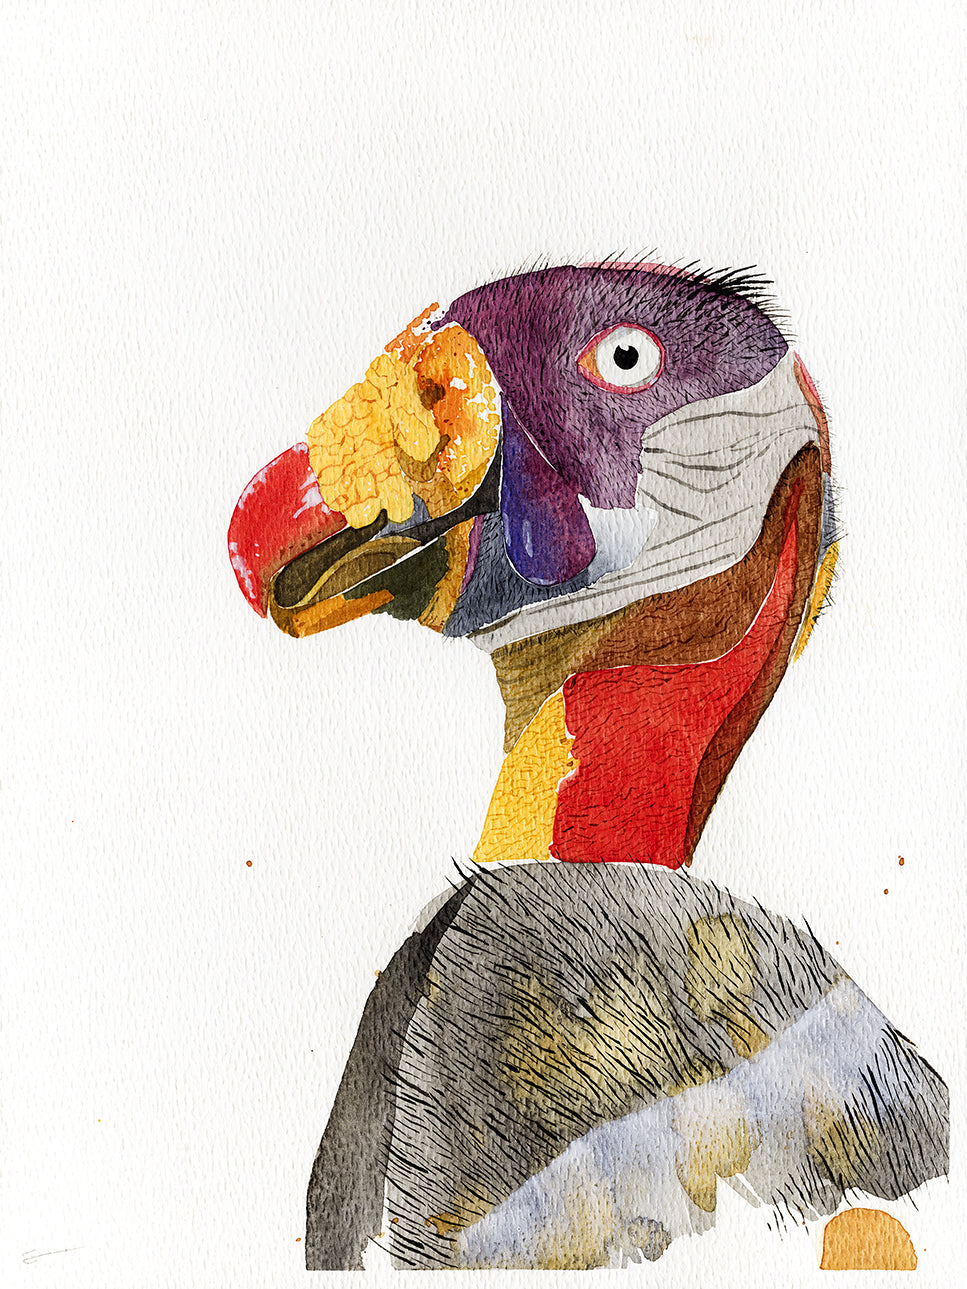 King vulture watercolor painting